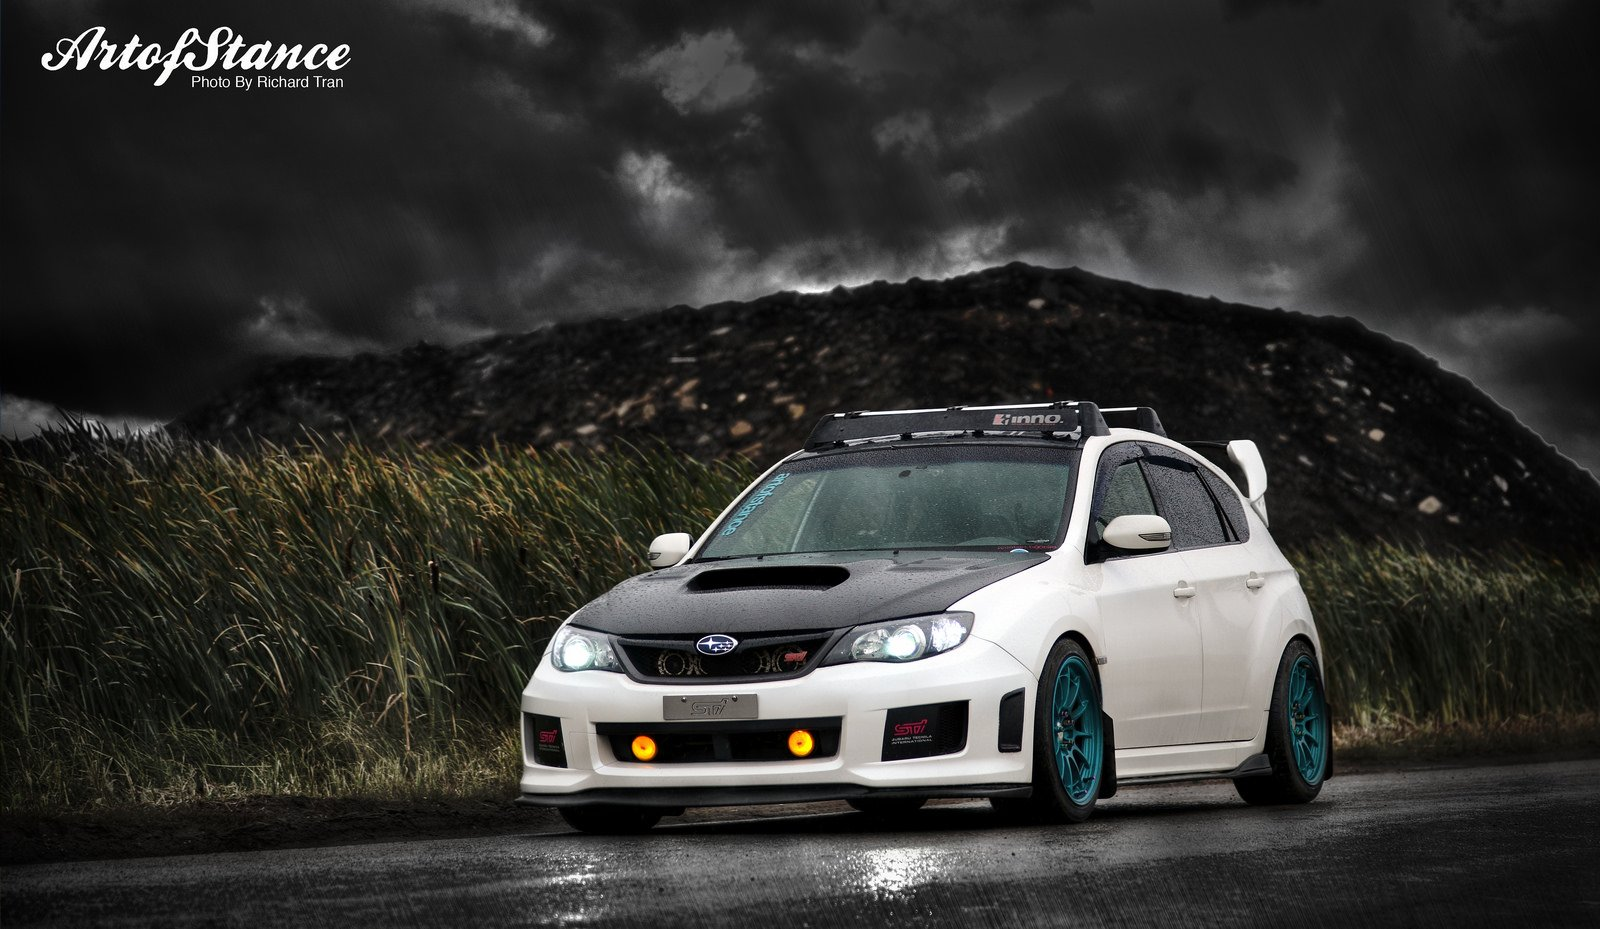 Subaru sti hatchback wallpaper